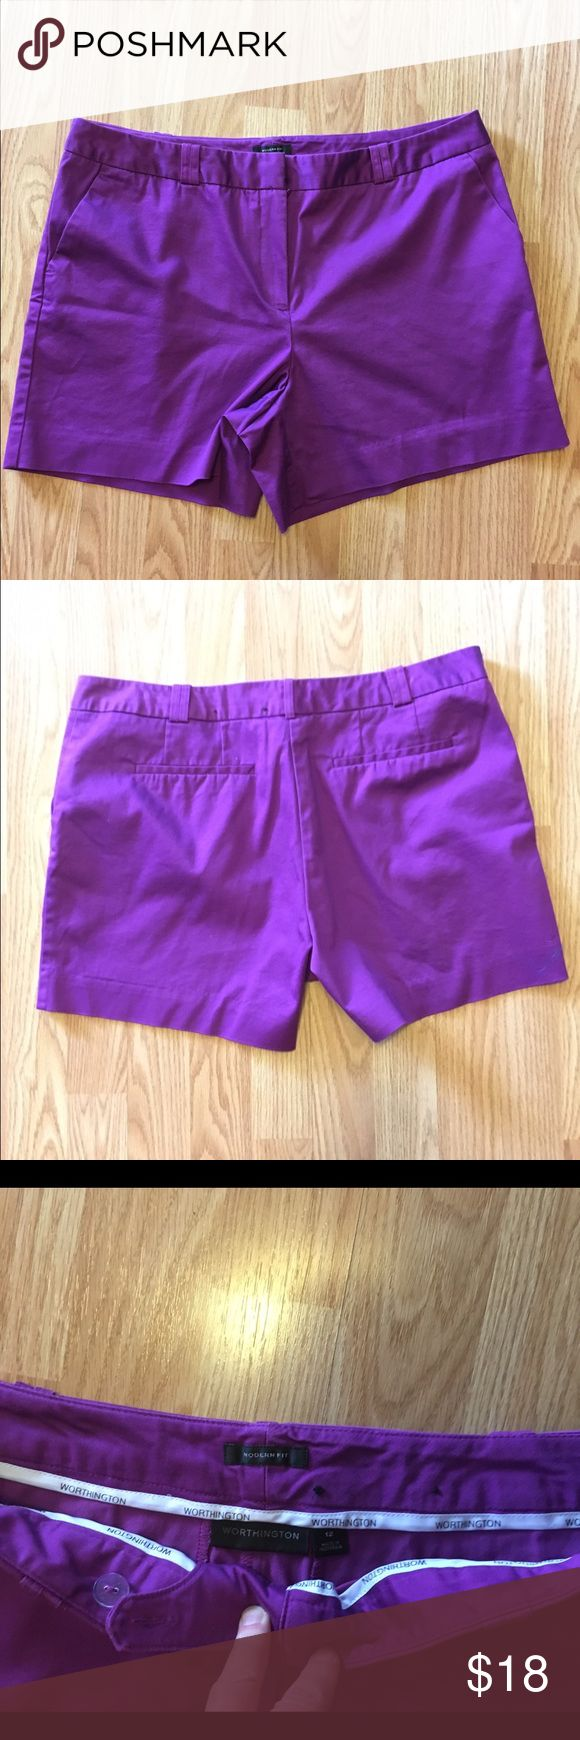 "WORTHINGTON Women's Purple Modern Fit Shorts  12 EUC WORTHINGTON MODERN PURPLE SHORTS IN SIZE 12. Front zip measuring 34"" waist and 4-1/2"" inseam. Worthington Shorts"